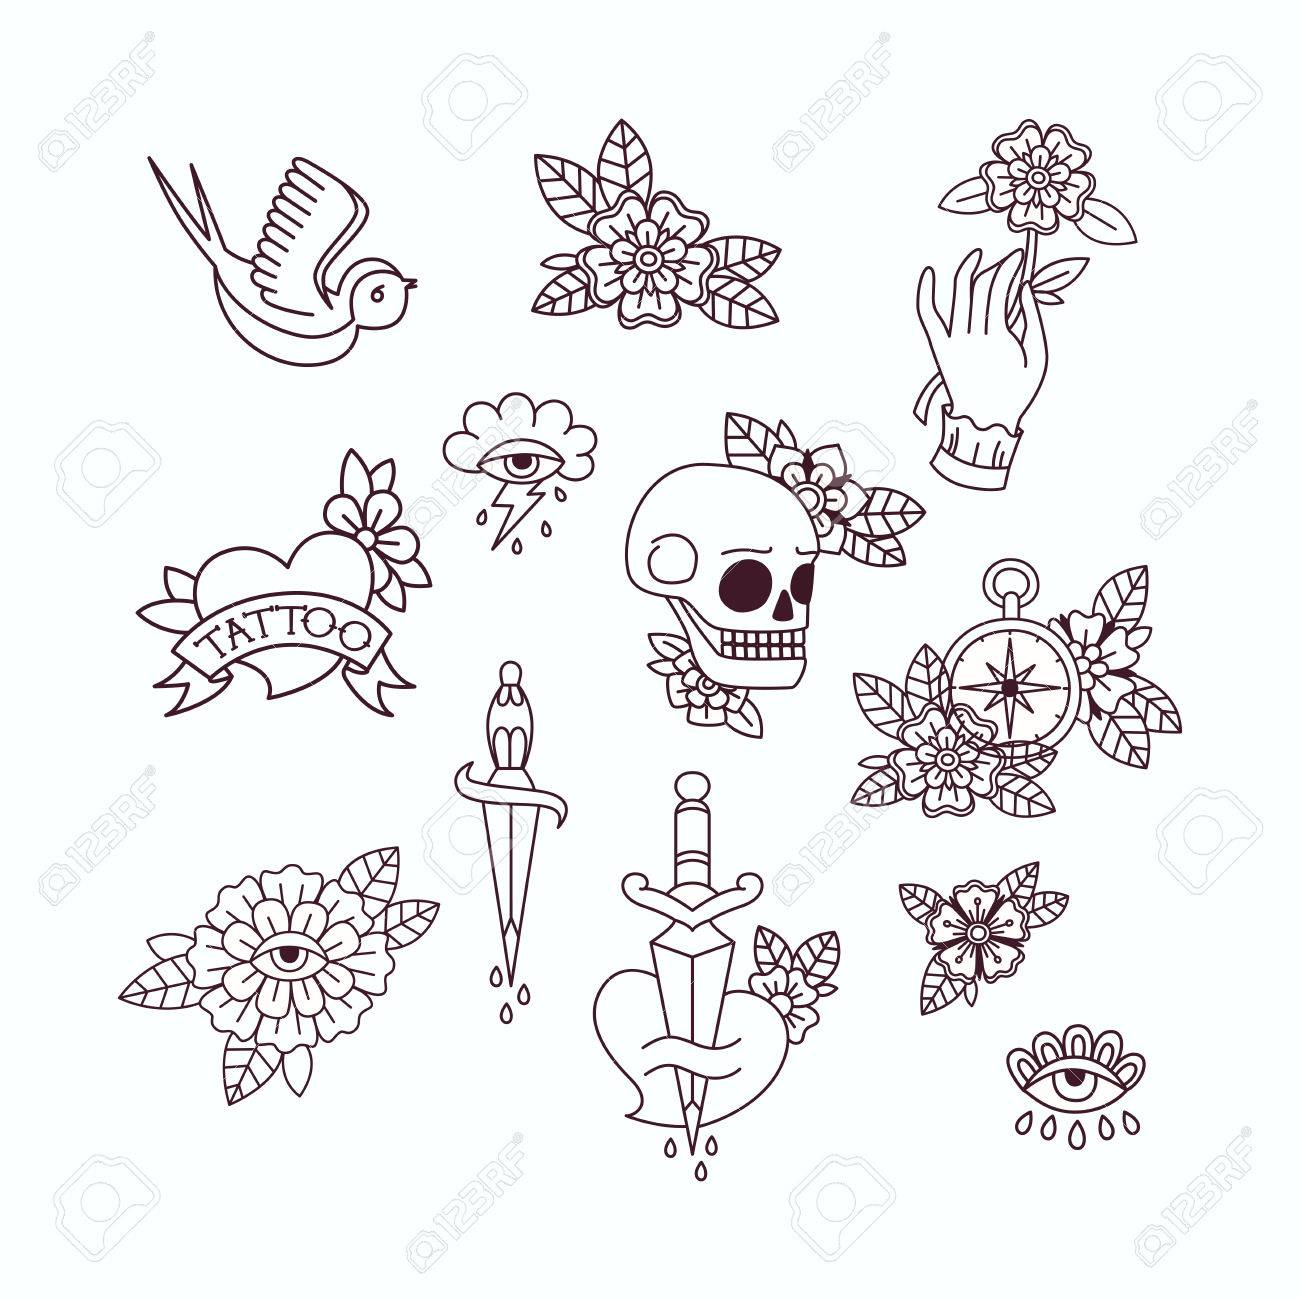 60a7c8b29d55f Old School Tattoo Elements. Set of Vintage Tattoos. Stock Vector - 74784062